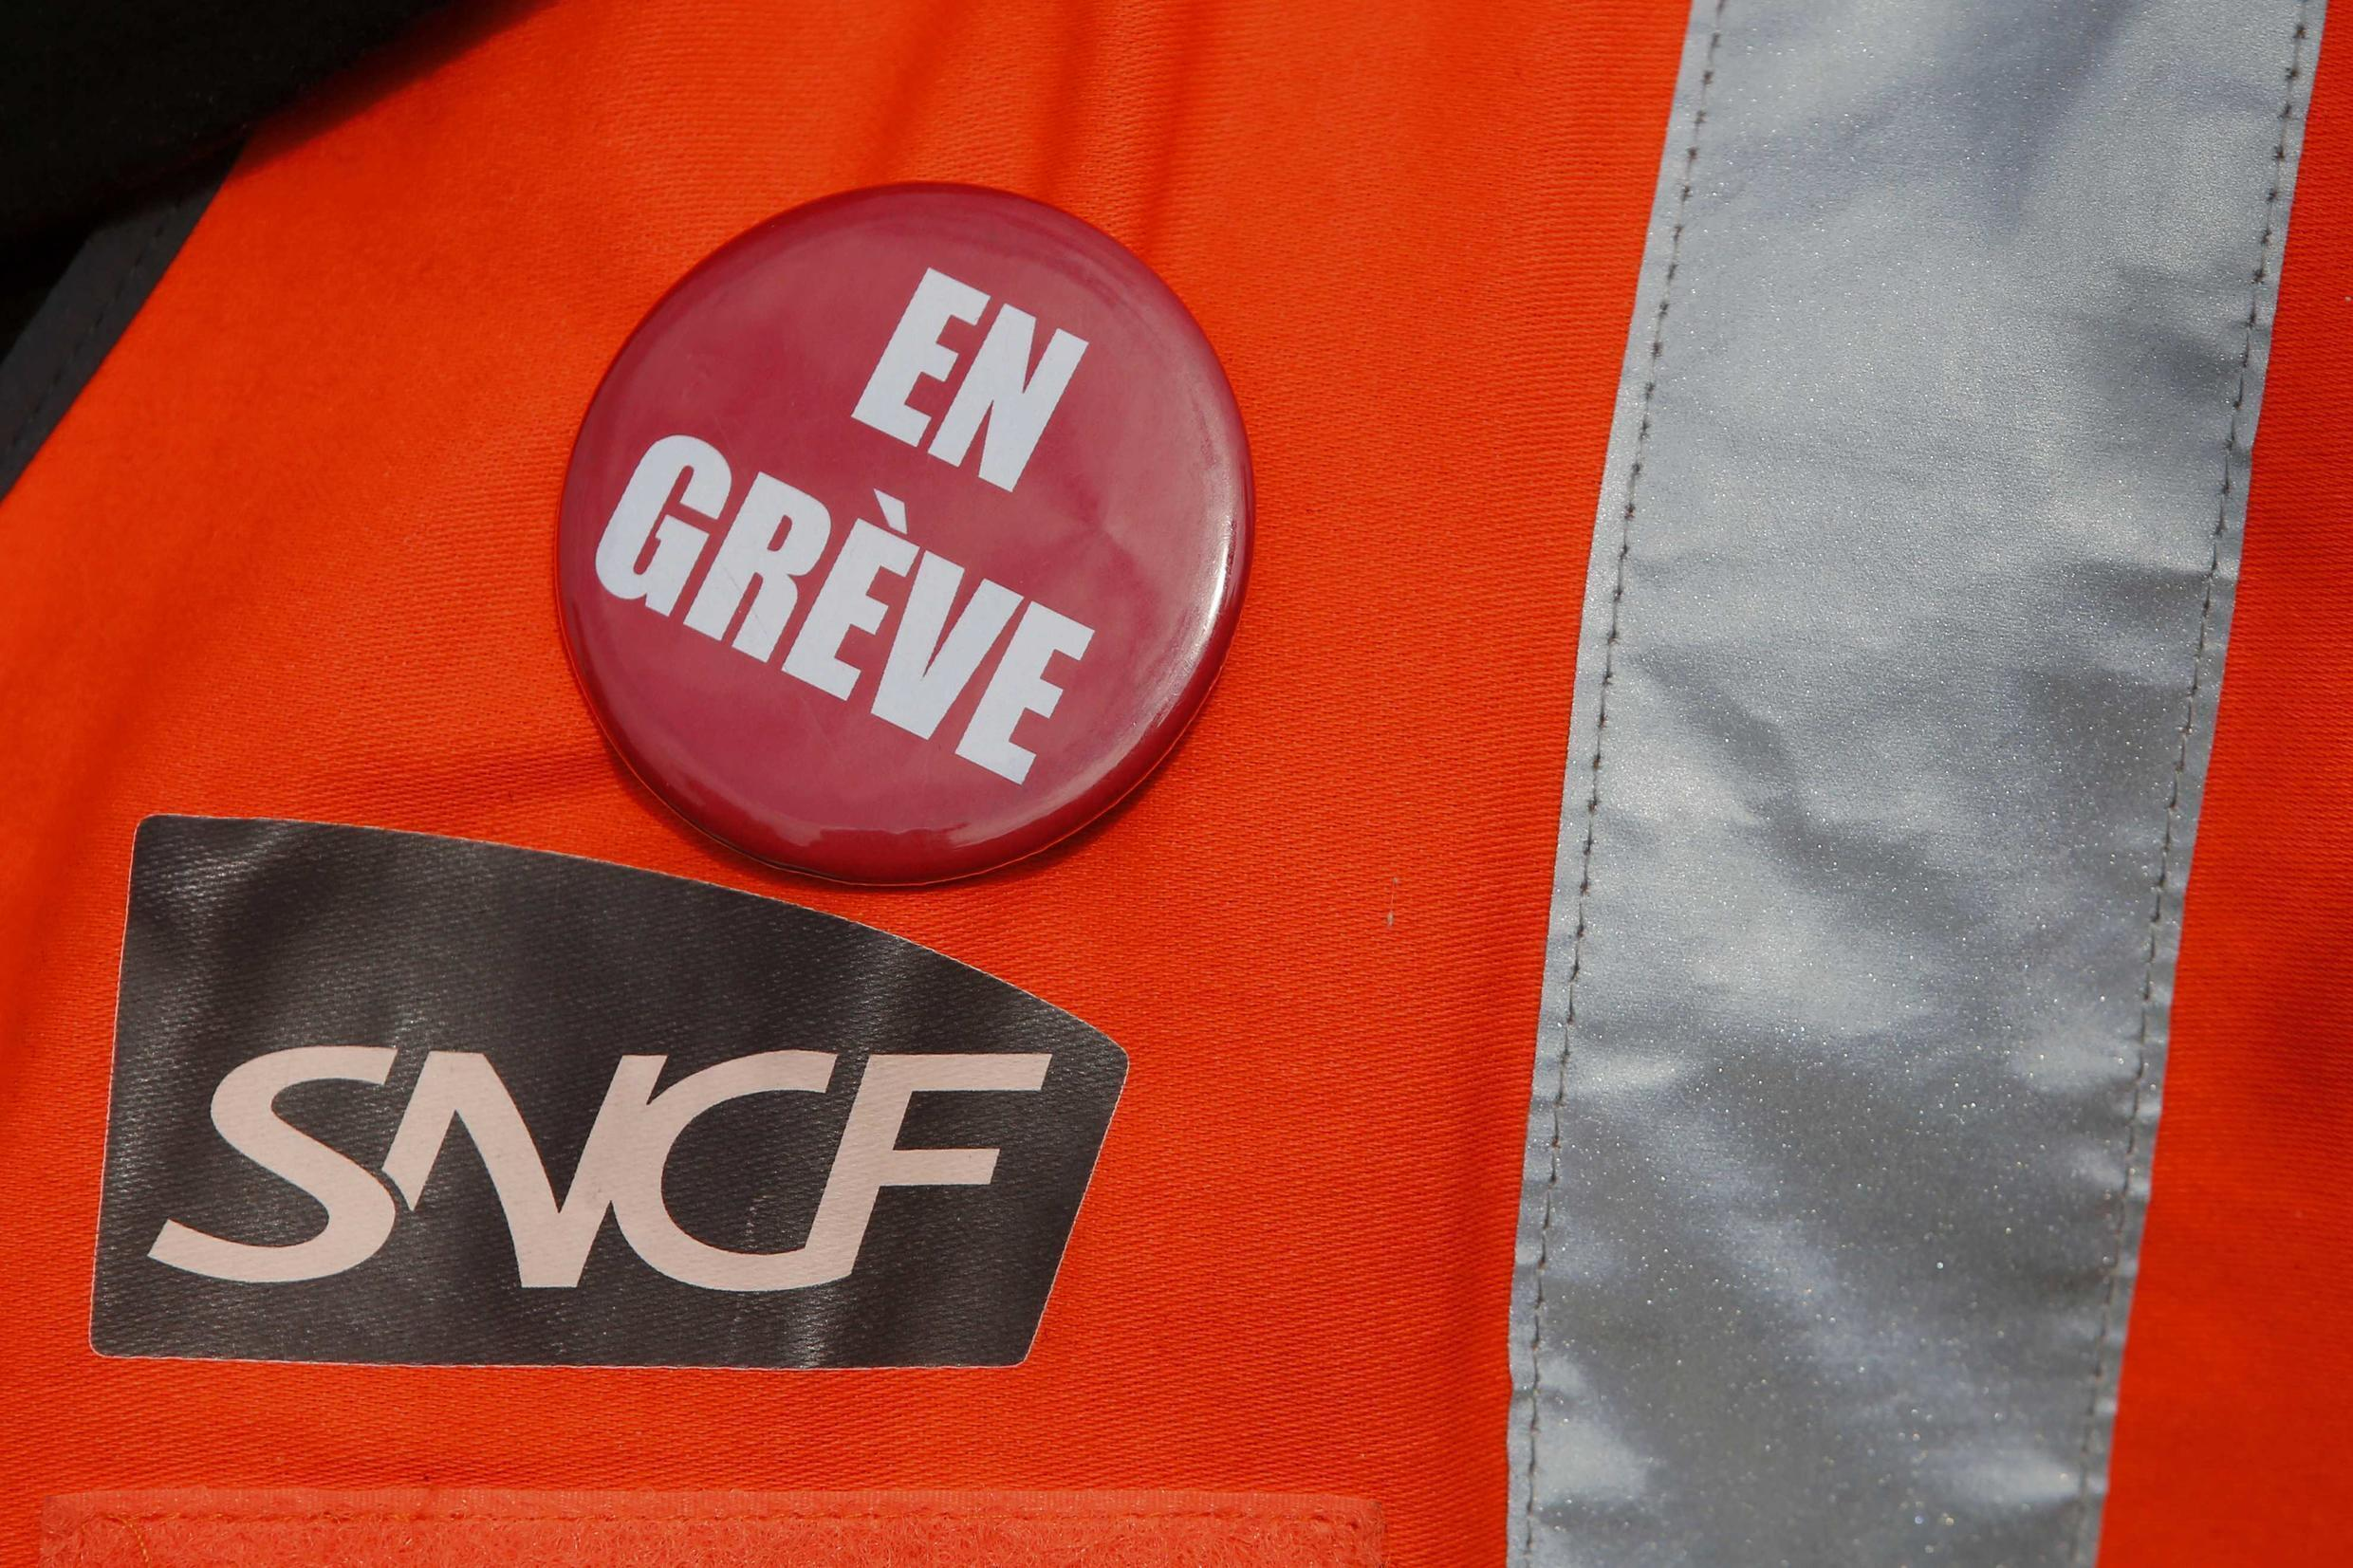 """A railworker with a badge saying """"On strike"""""""